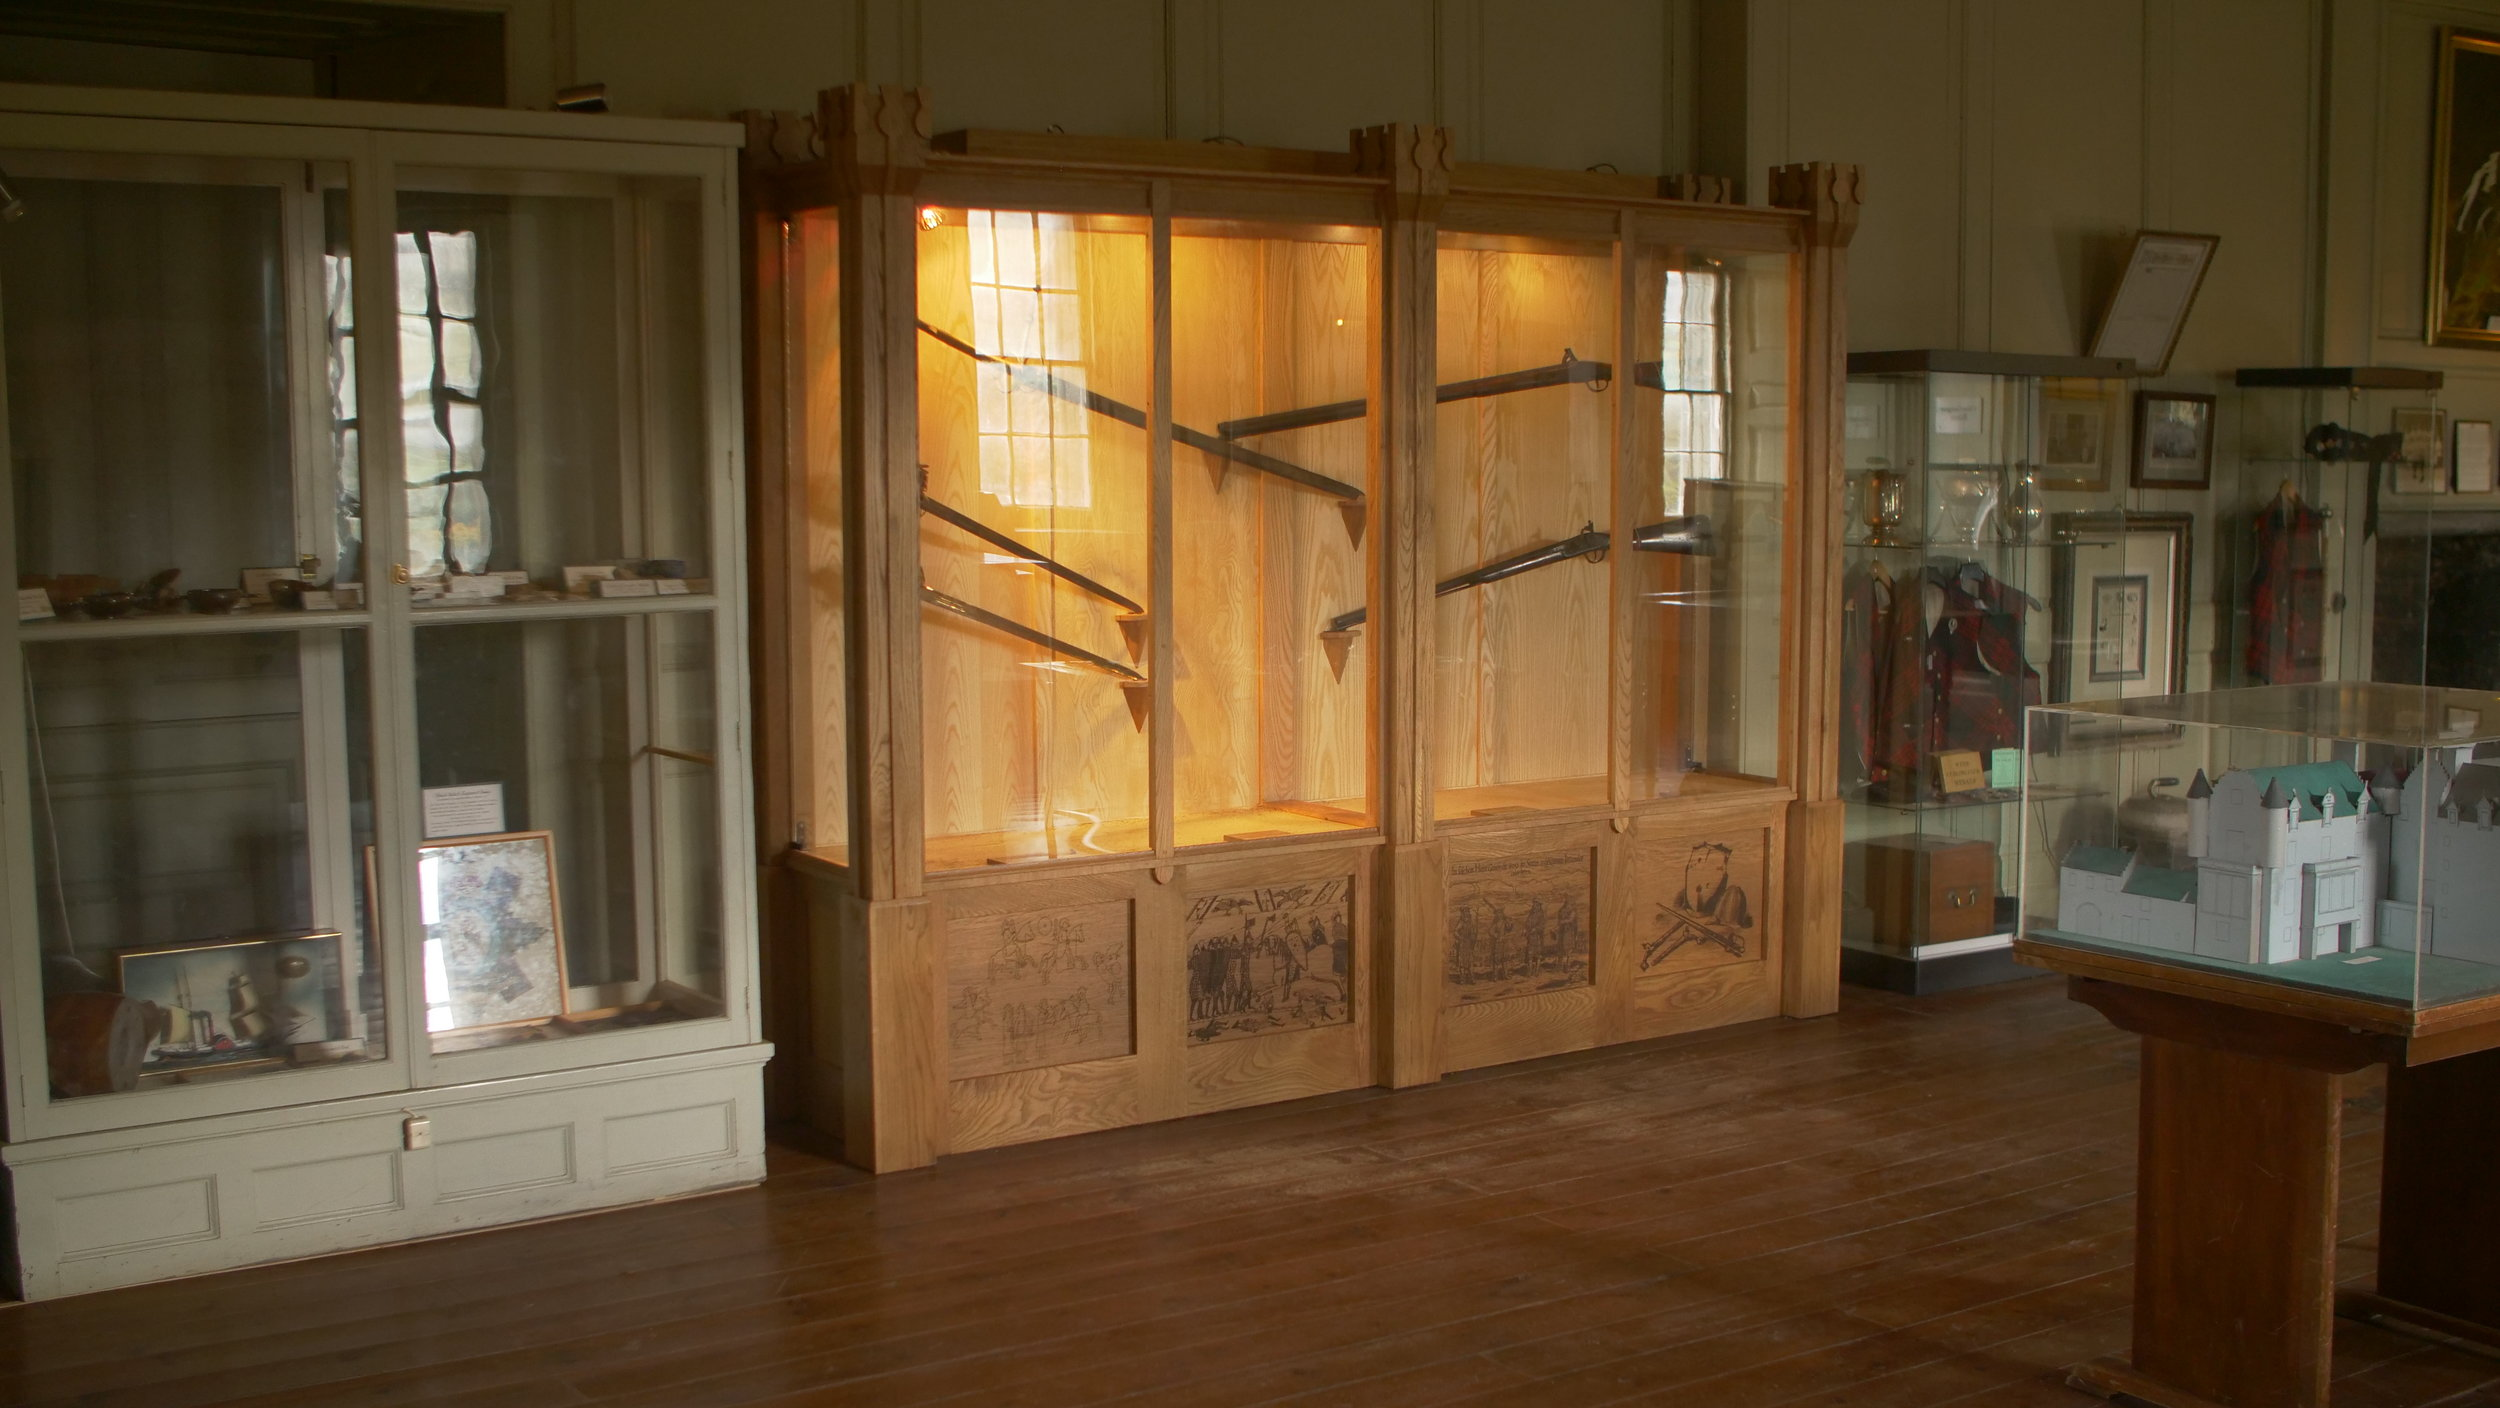 Scottish Baronial Display Cabinet designed by Eoghann Menzies